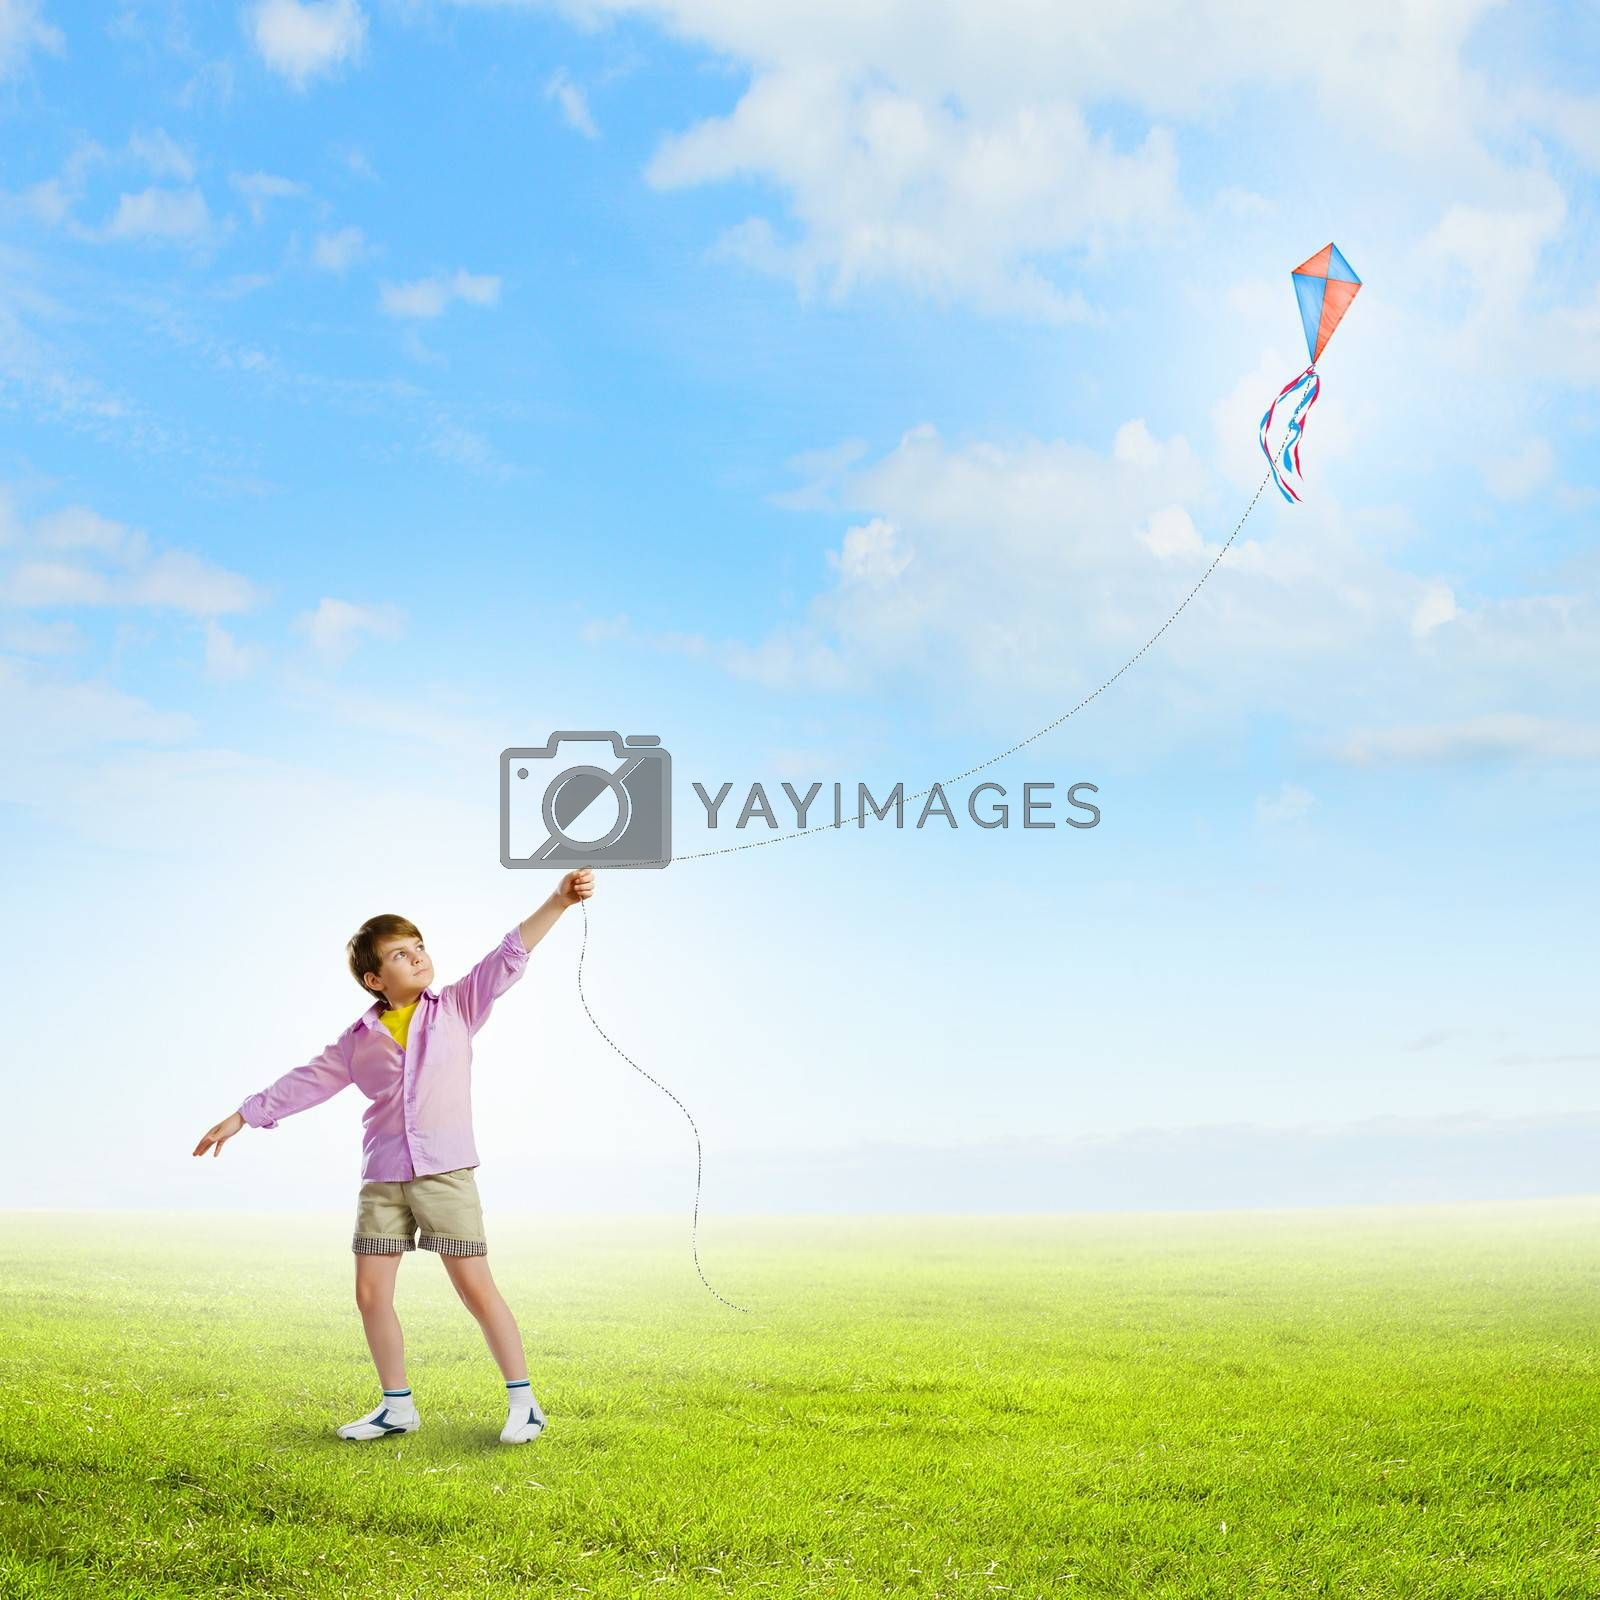 Royalty free image of Boy with kite by sergey_nivens